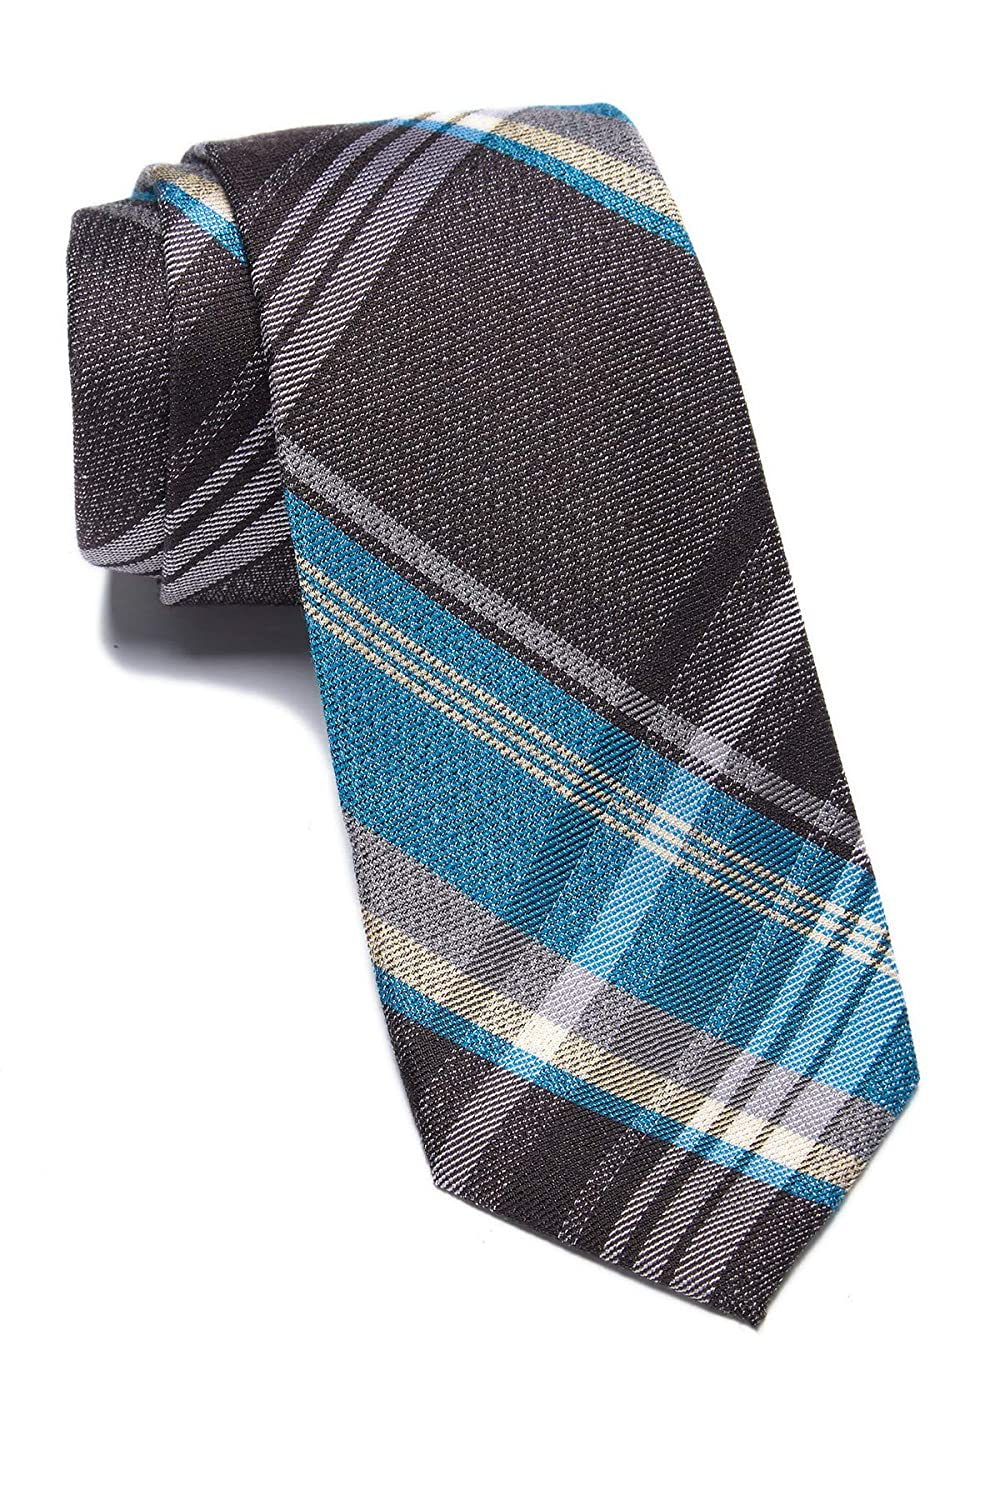 Ben Sherman Carlyle Plaid Tie - Brown/Aqua: Amazon.es: Ropa y ...